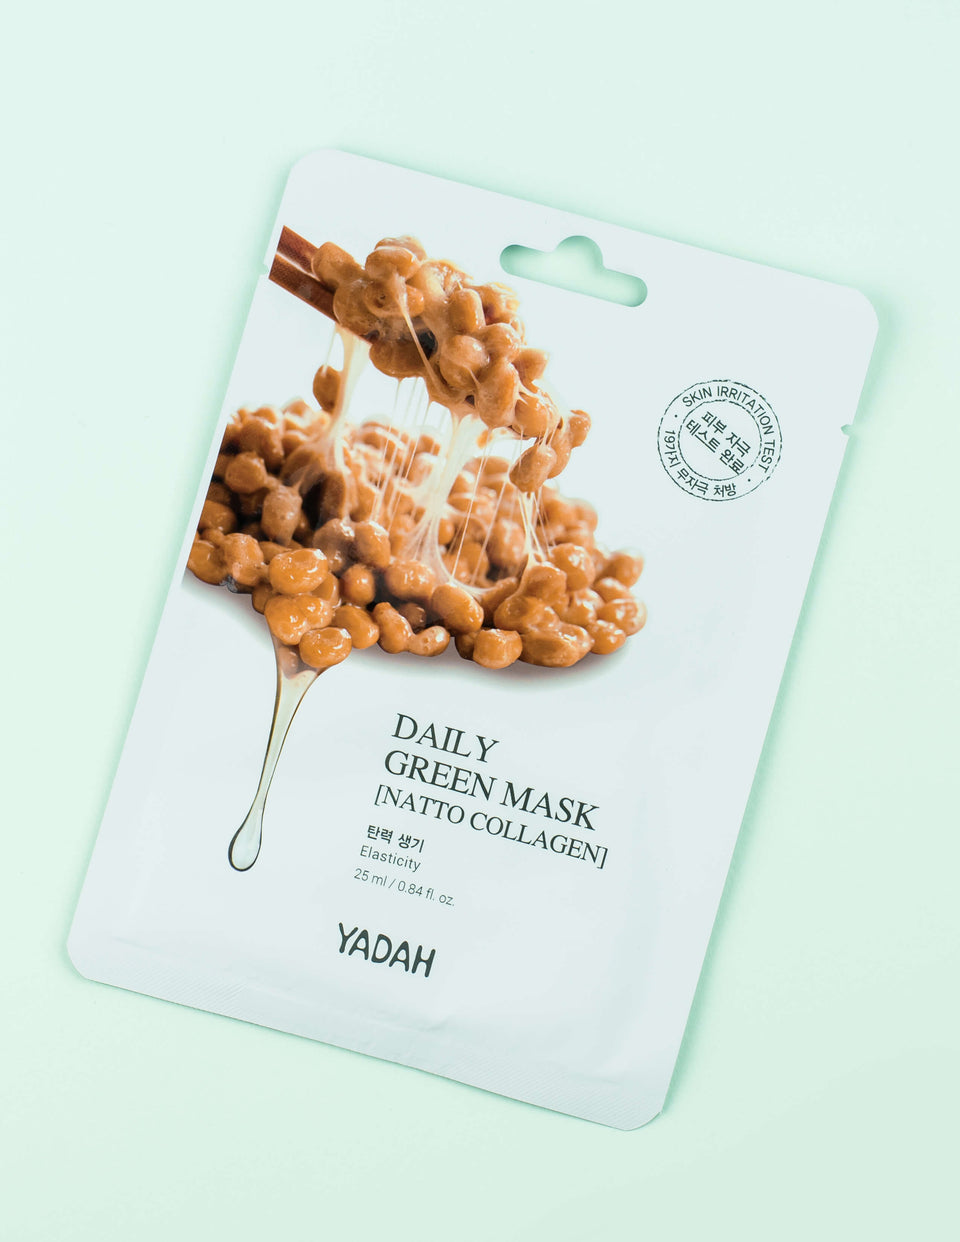 Daily Green Mask - Natto Collagen